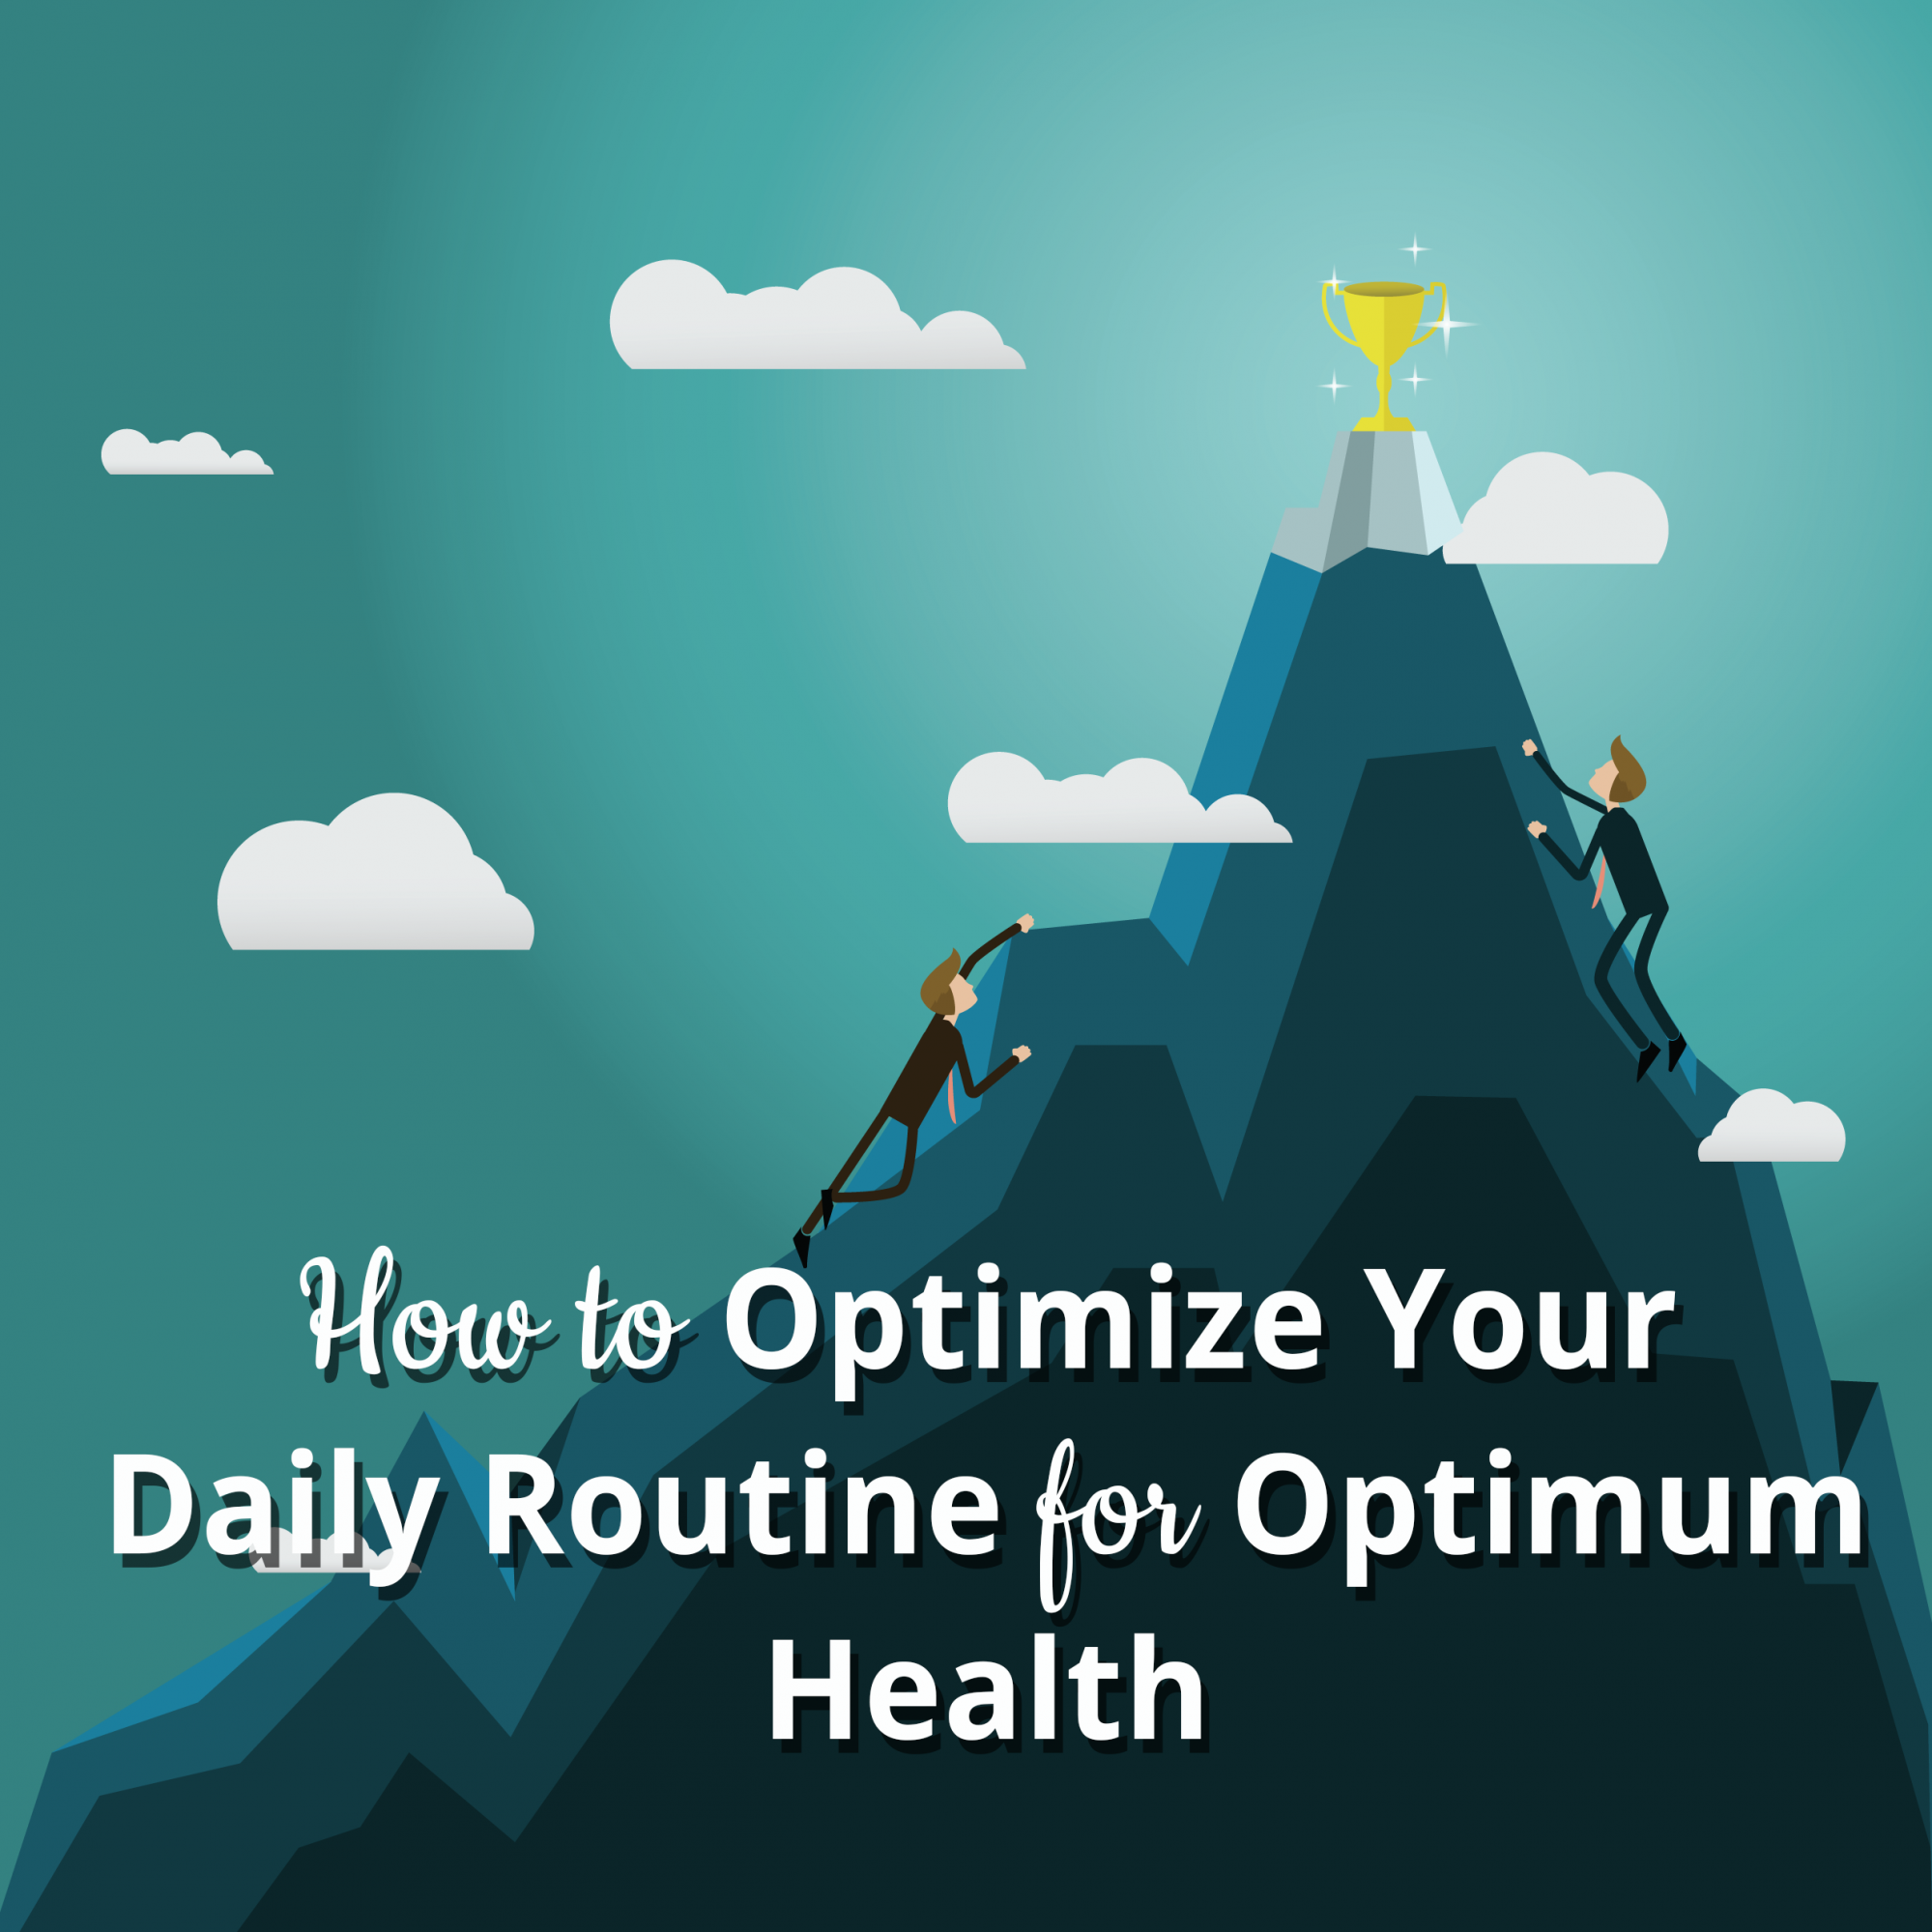 How to Optimize Your Daily Routine for Optimum Health